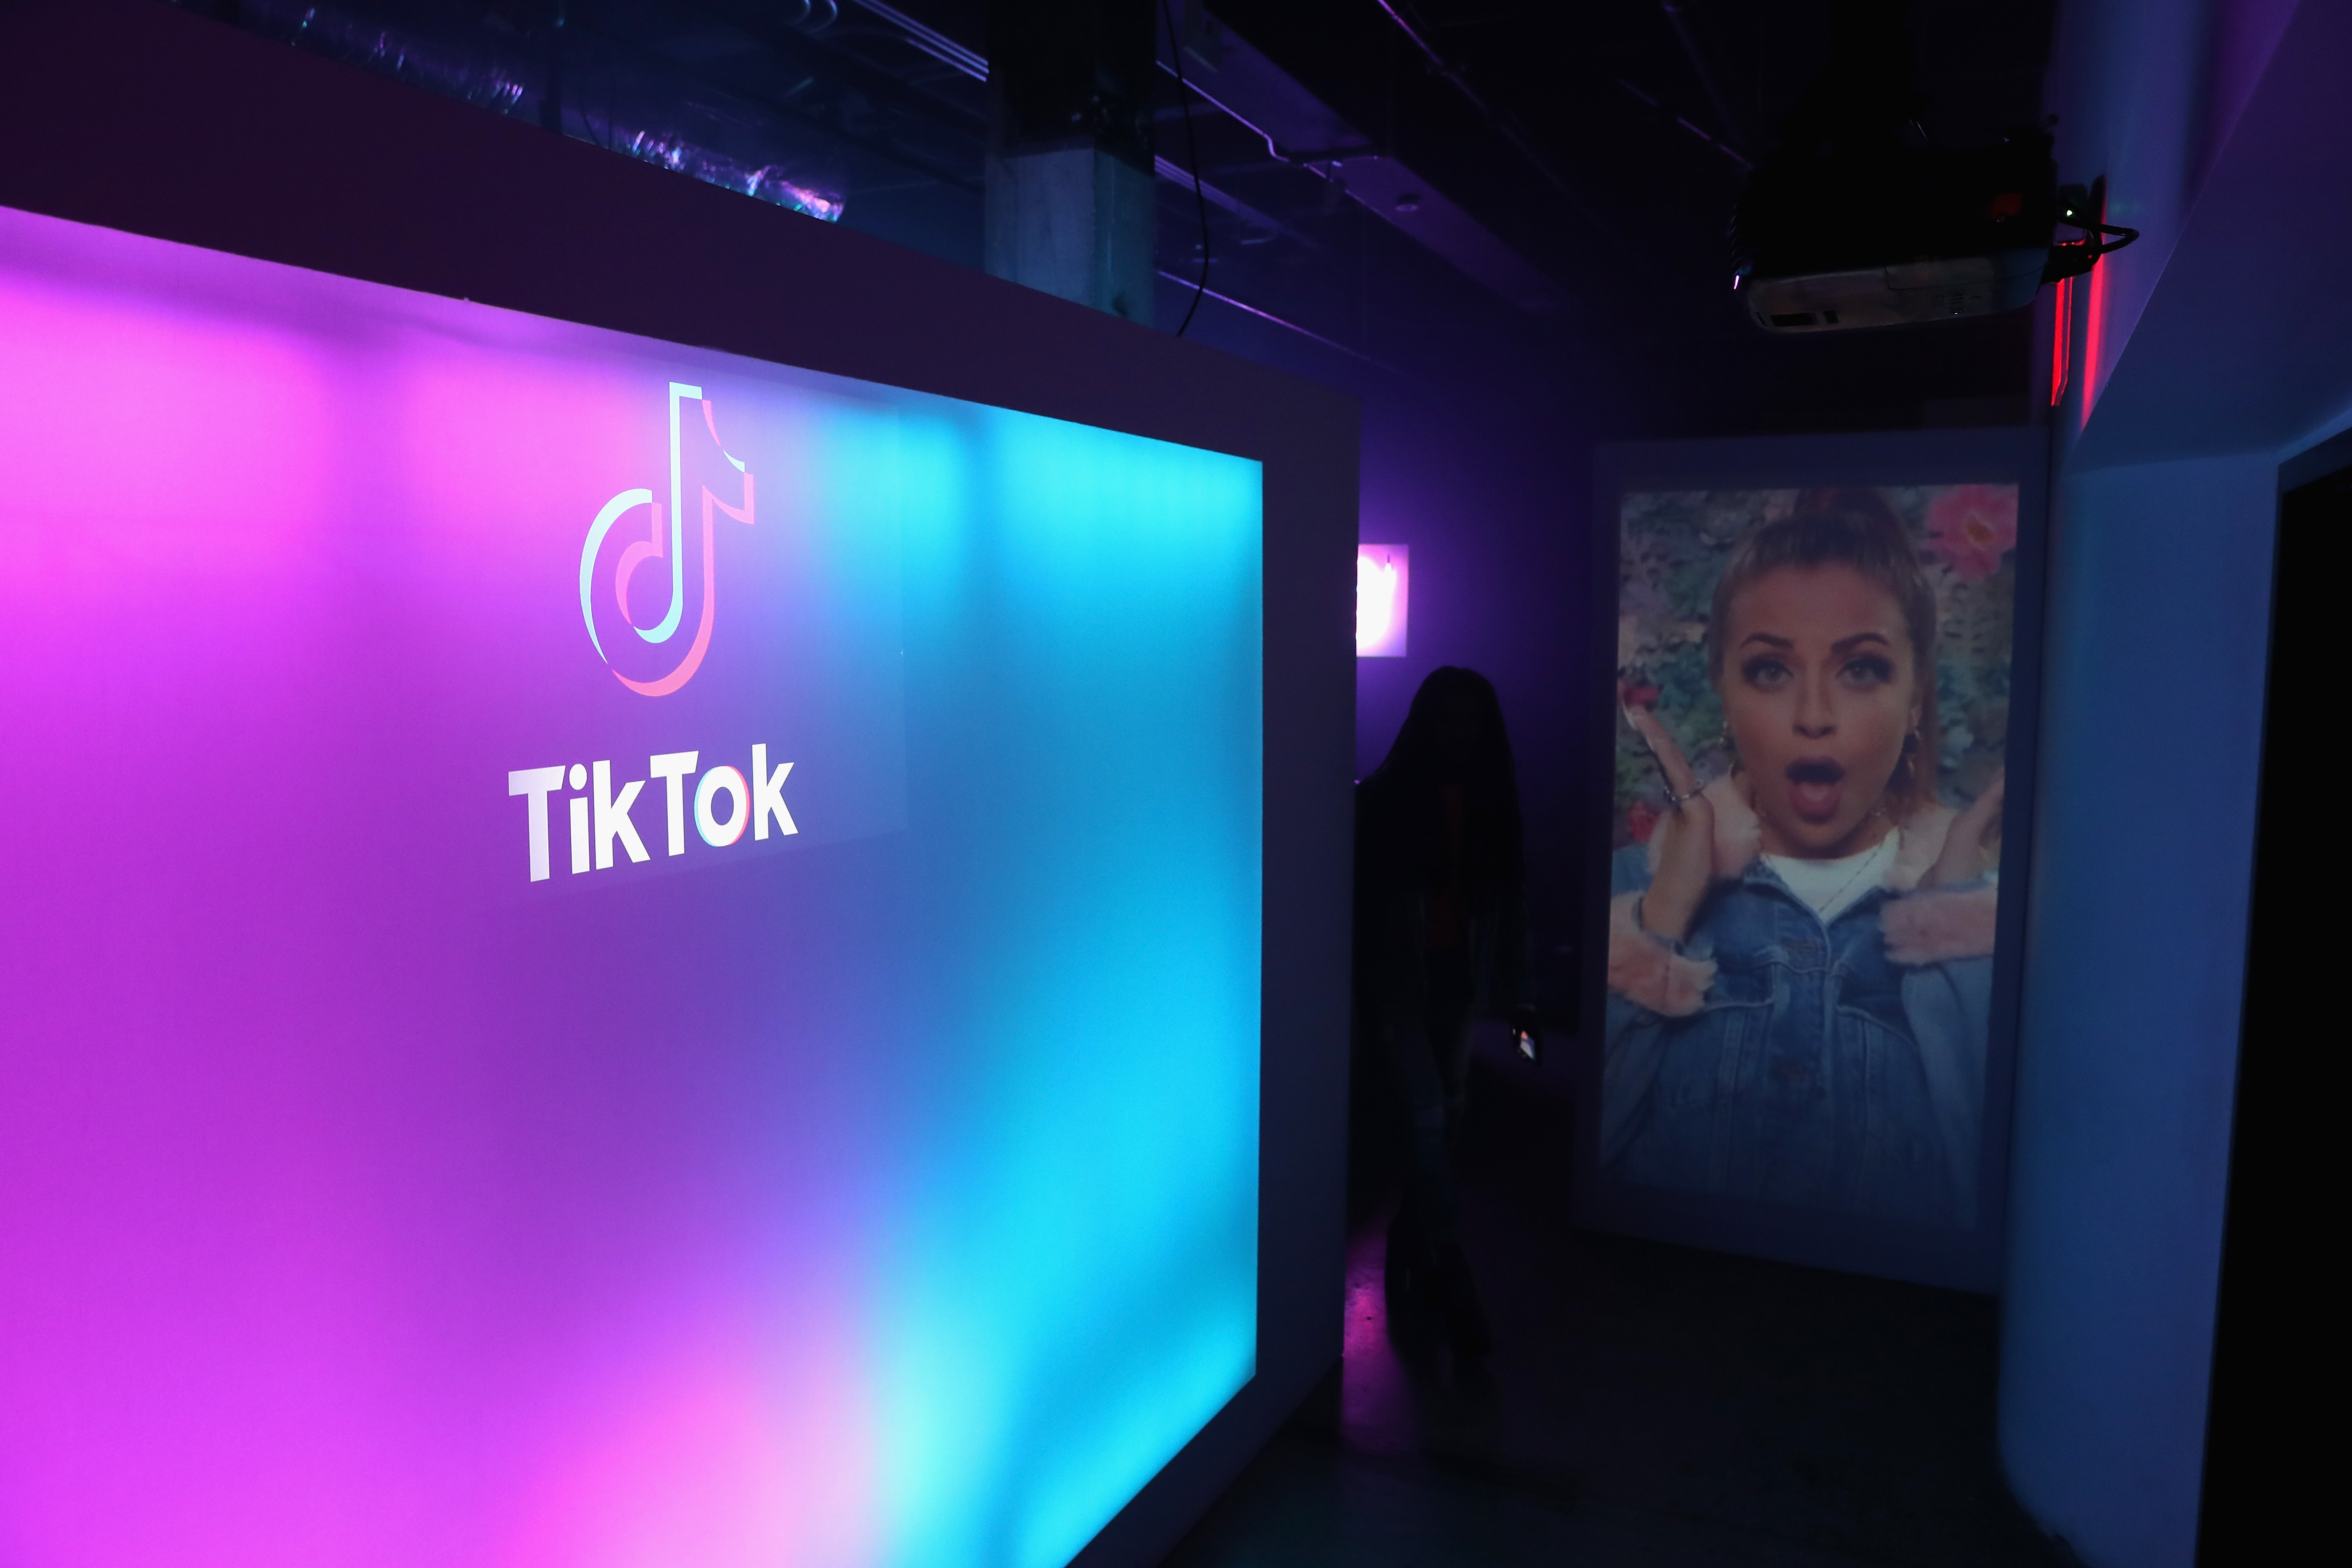 LOS ANGELES, CA - AUGUST 01: A general view of the atmosphere during the TikTok US launch celebration at NeueHouse Hollywood on August 1, 2018 in Los Angeles, California. (Joe Scarnici/Getty Images)